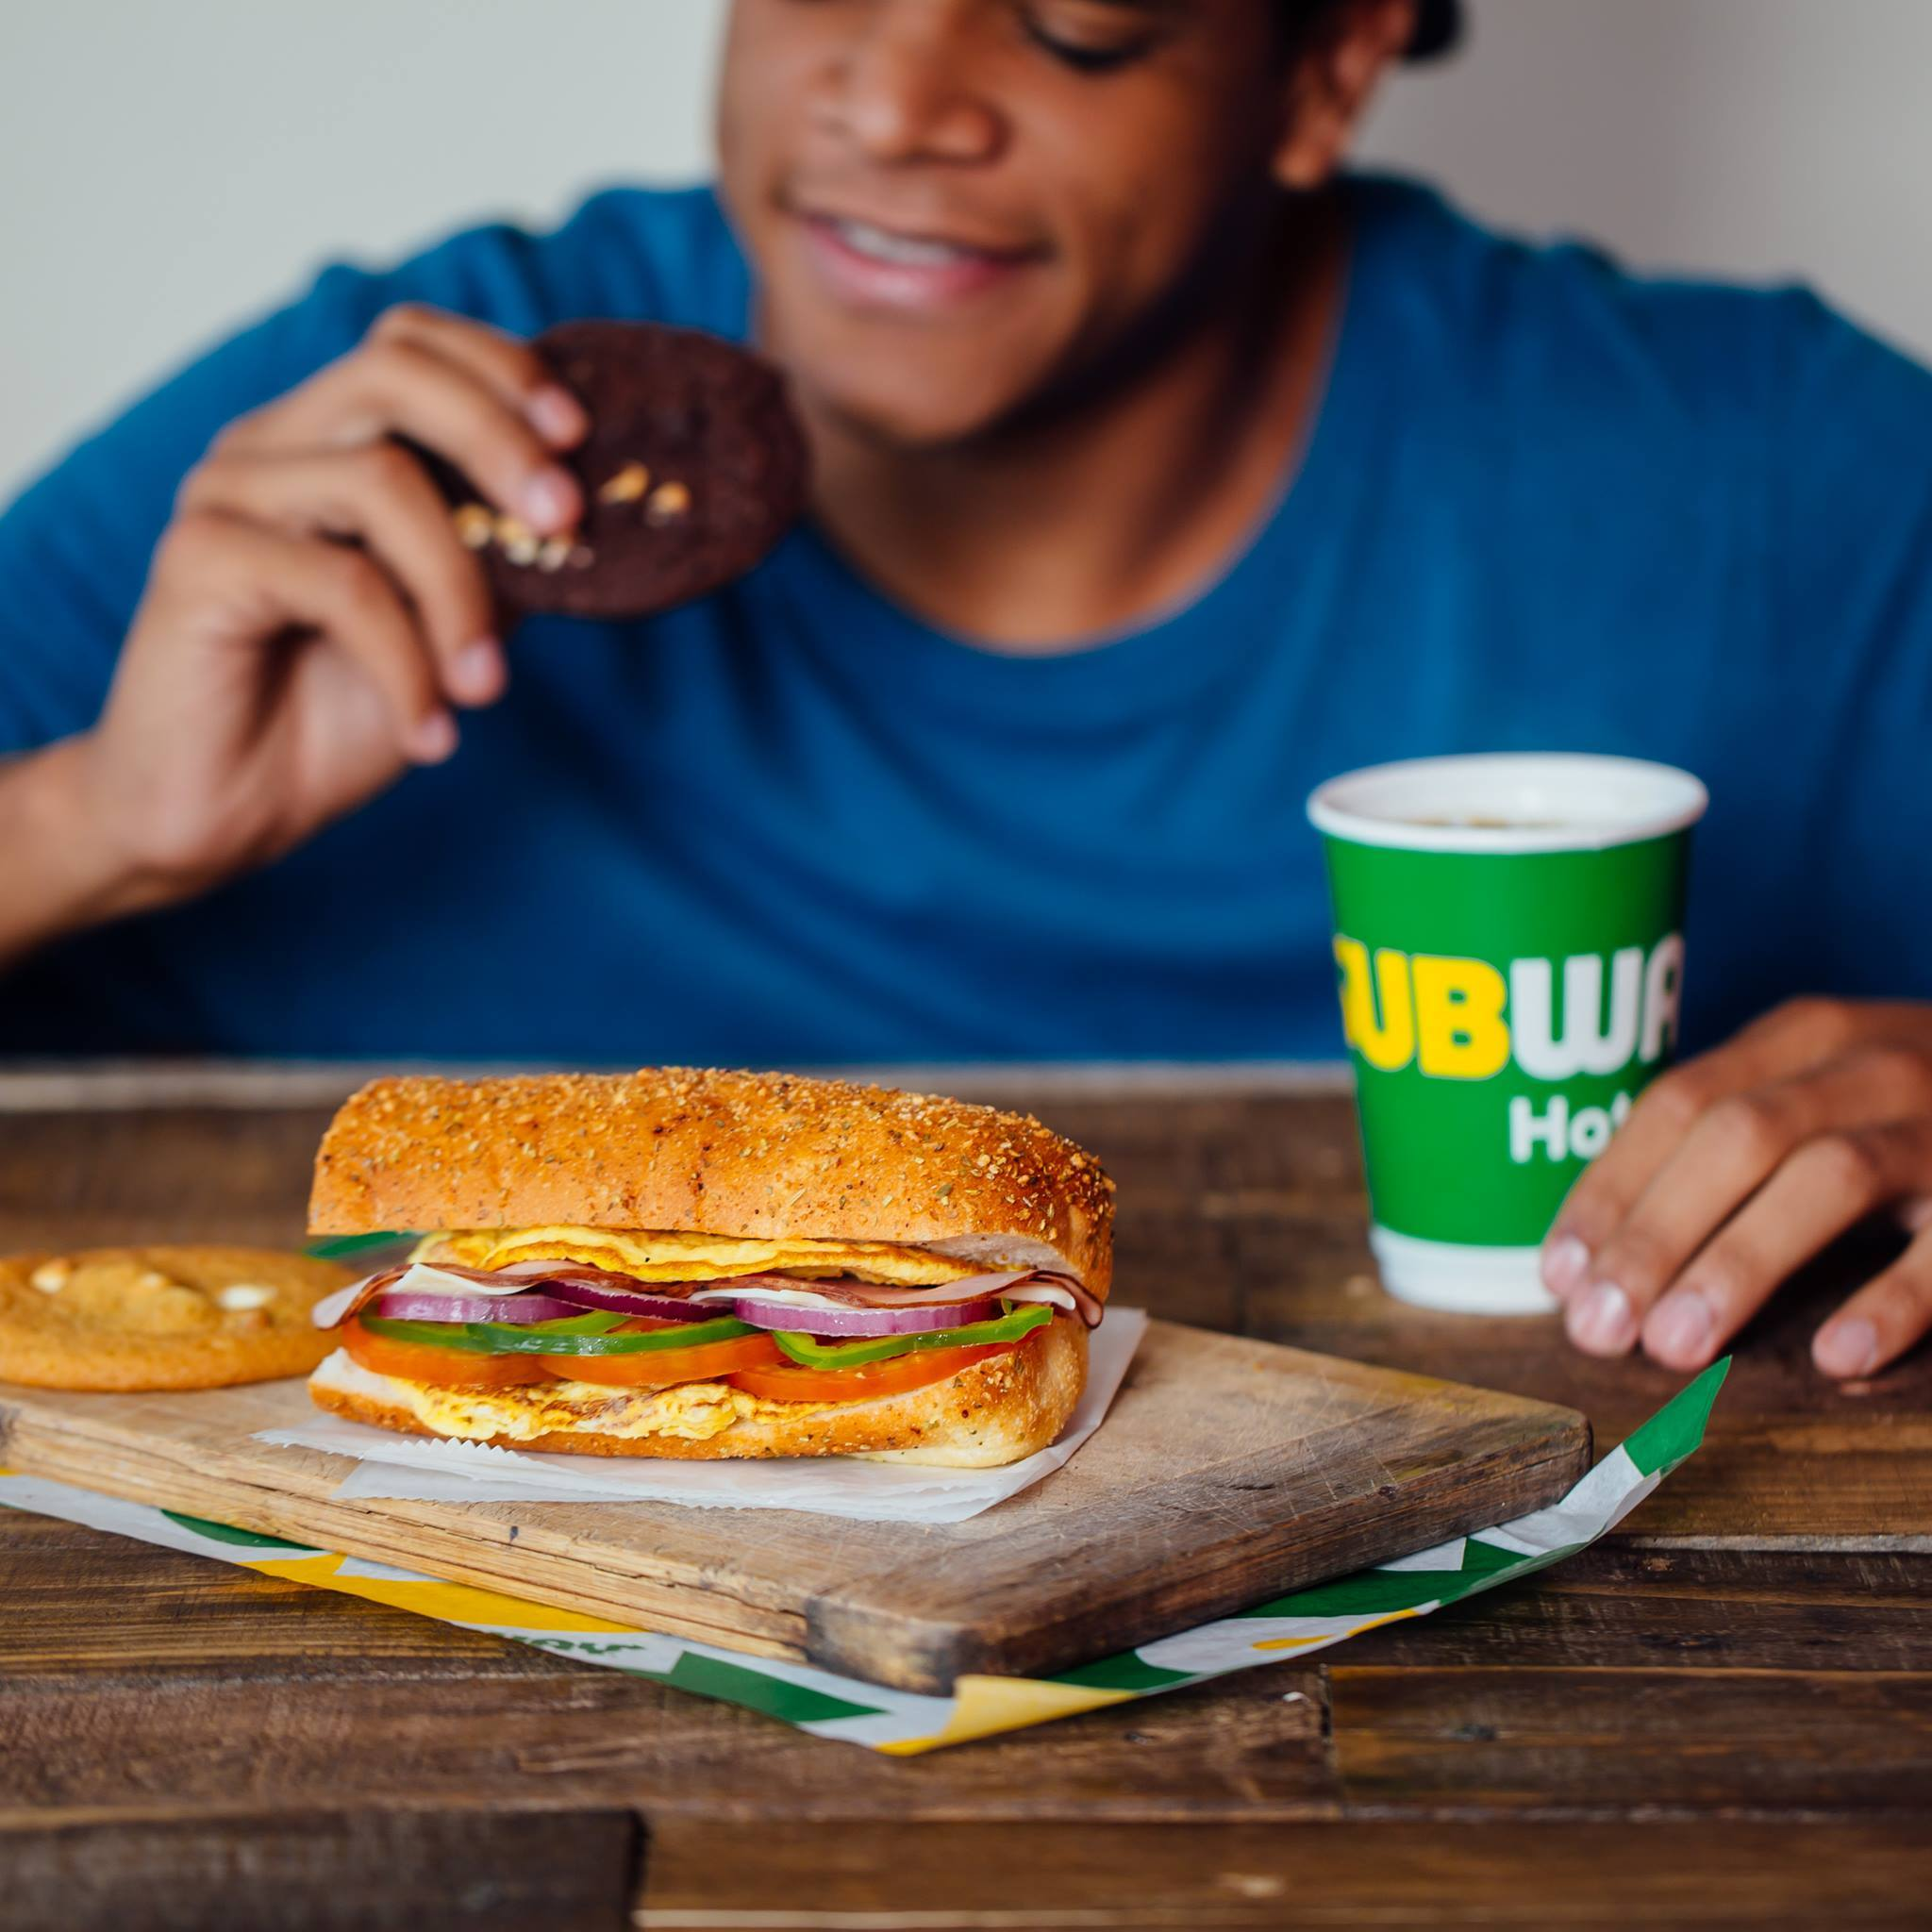 Man at Subway eating s Sandwich, cookie and drinking